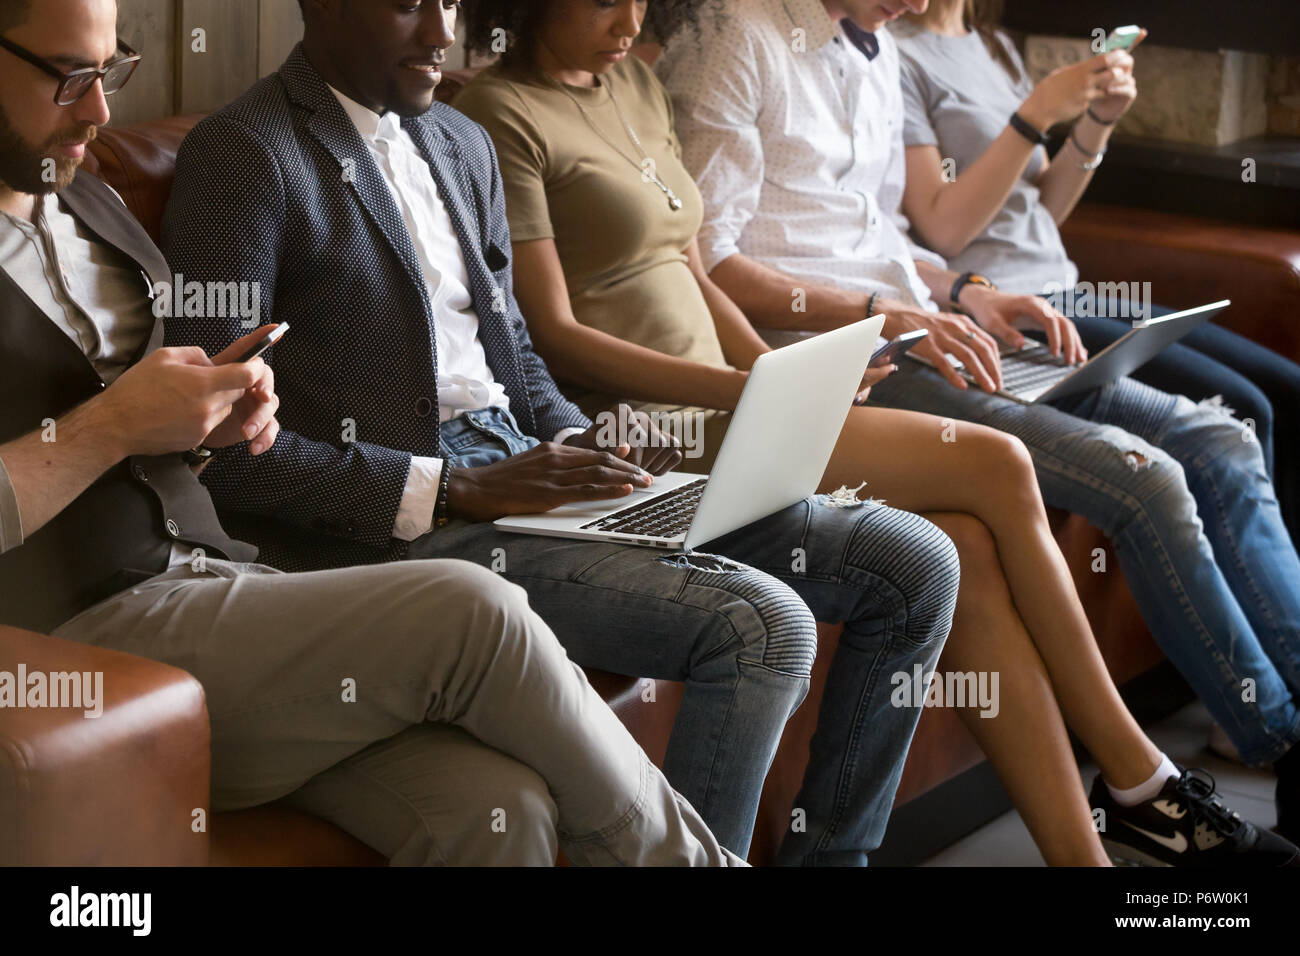 Close up of technology obsessed multiracial people sitting in qu - Stock Image